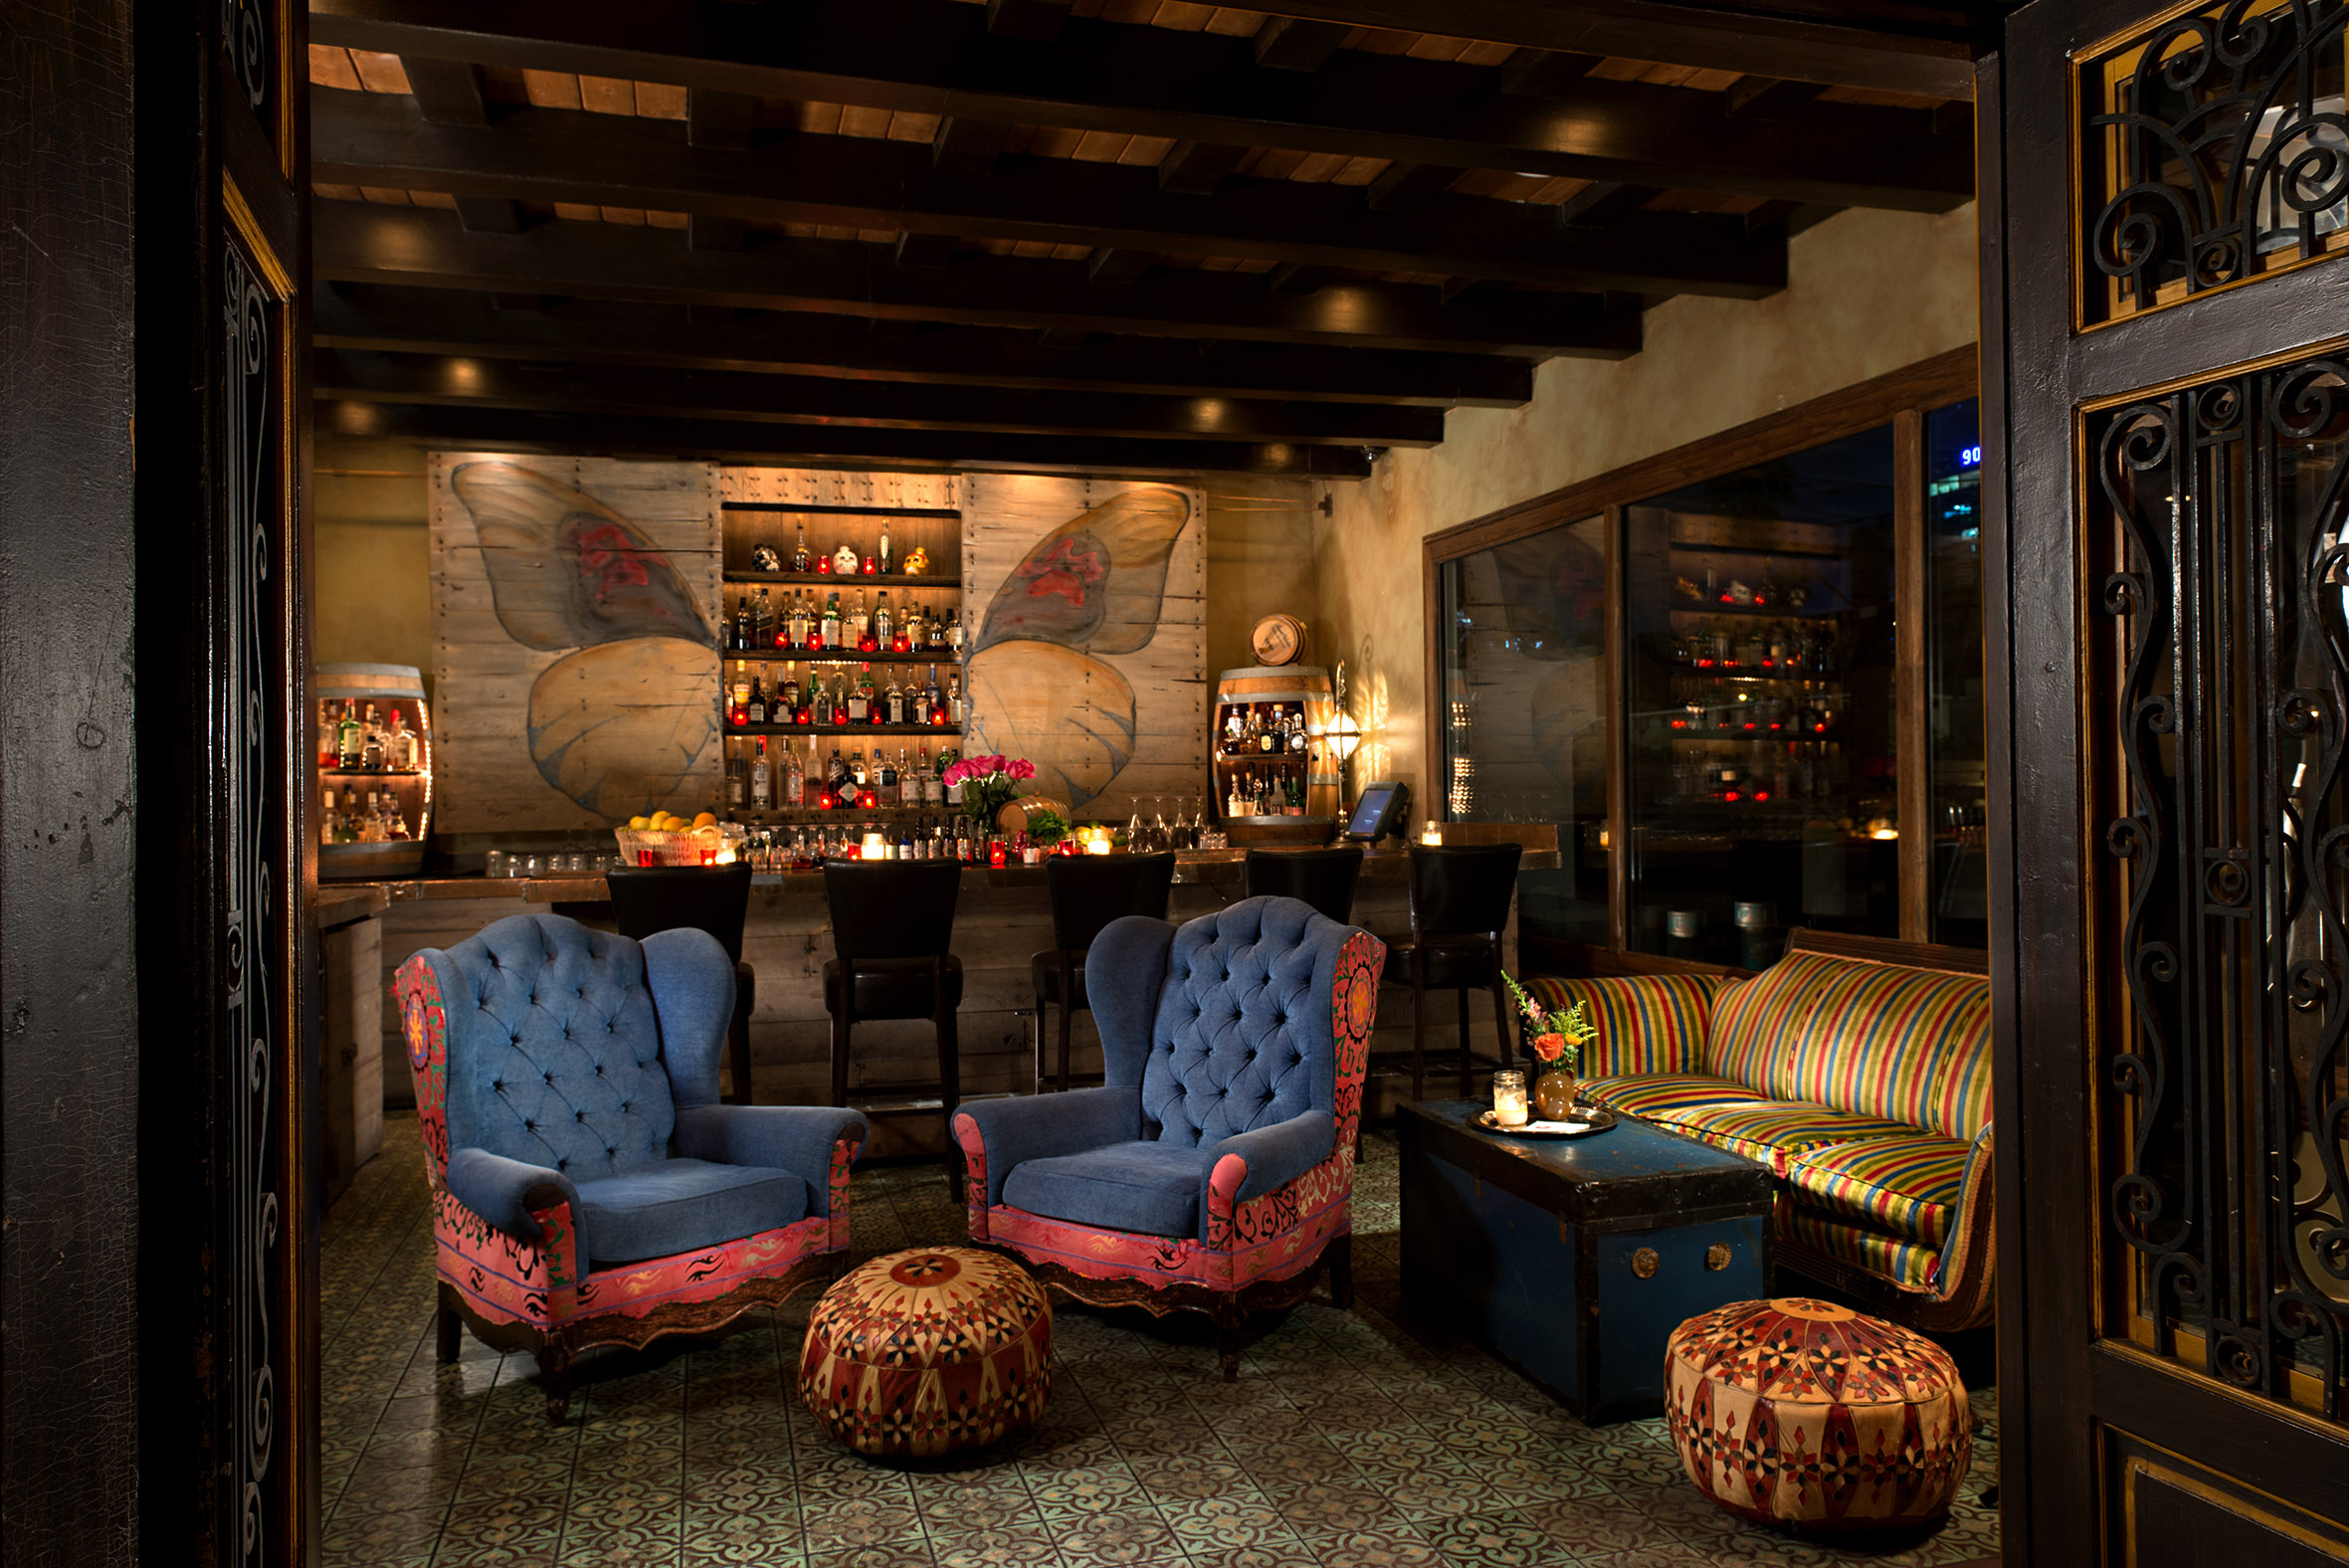 Dimly lit room with two blue and pink, elegant wingback chairs in front of a bar with butterfly motif on the wall in Los Angeles